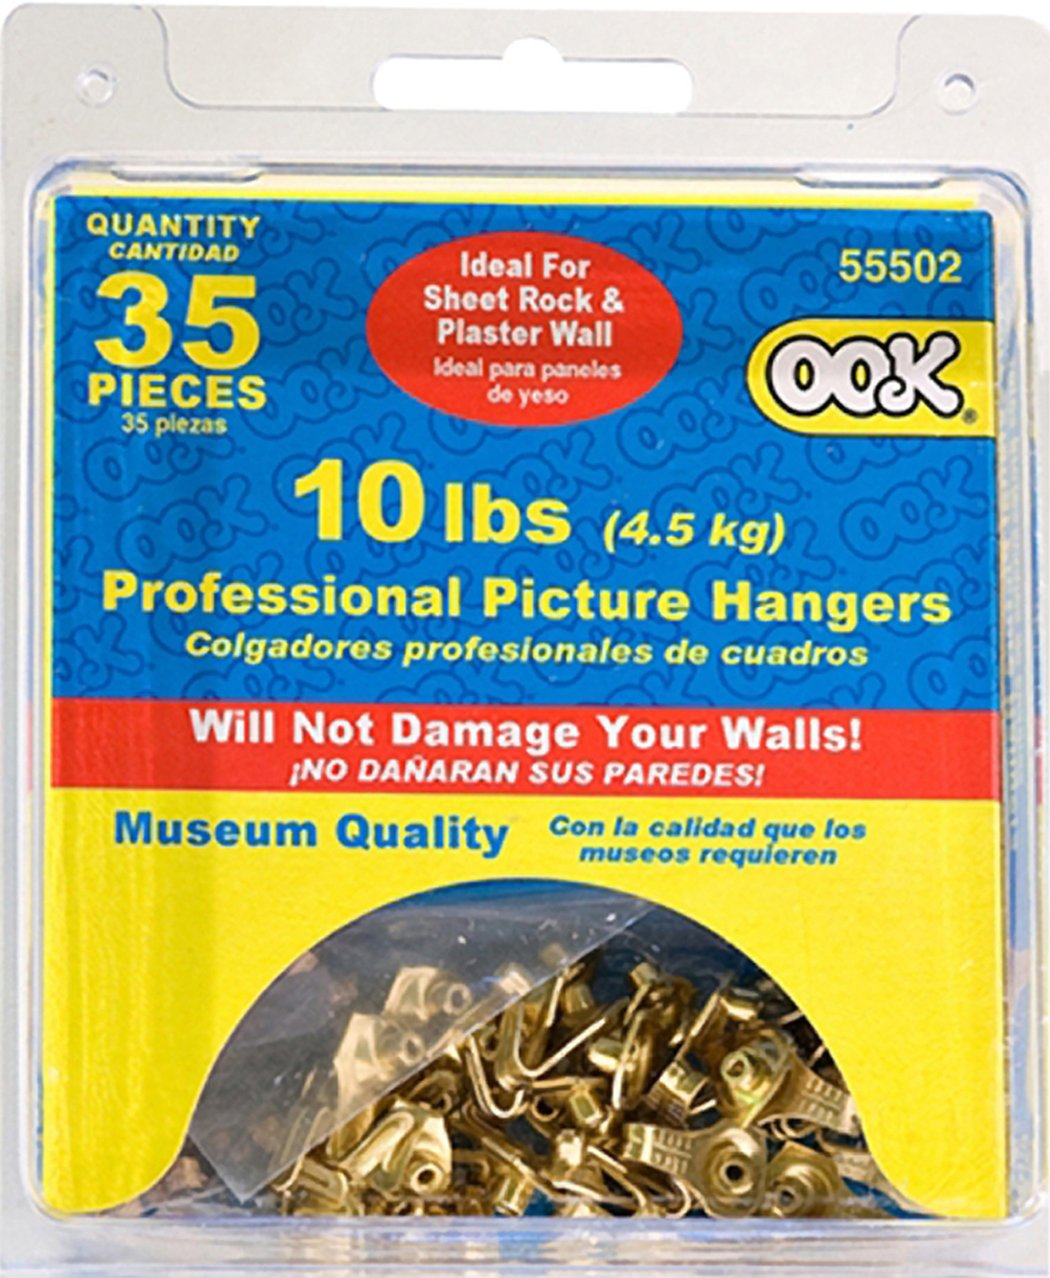 OOK by Hillman 535888 Professional Brass Finished Picture Hangers 10LB Pack of 35 The Hillman Group